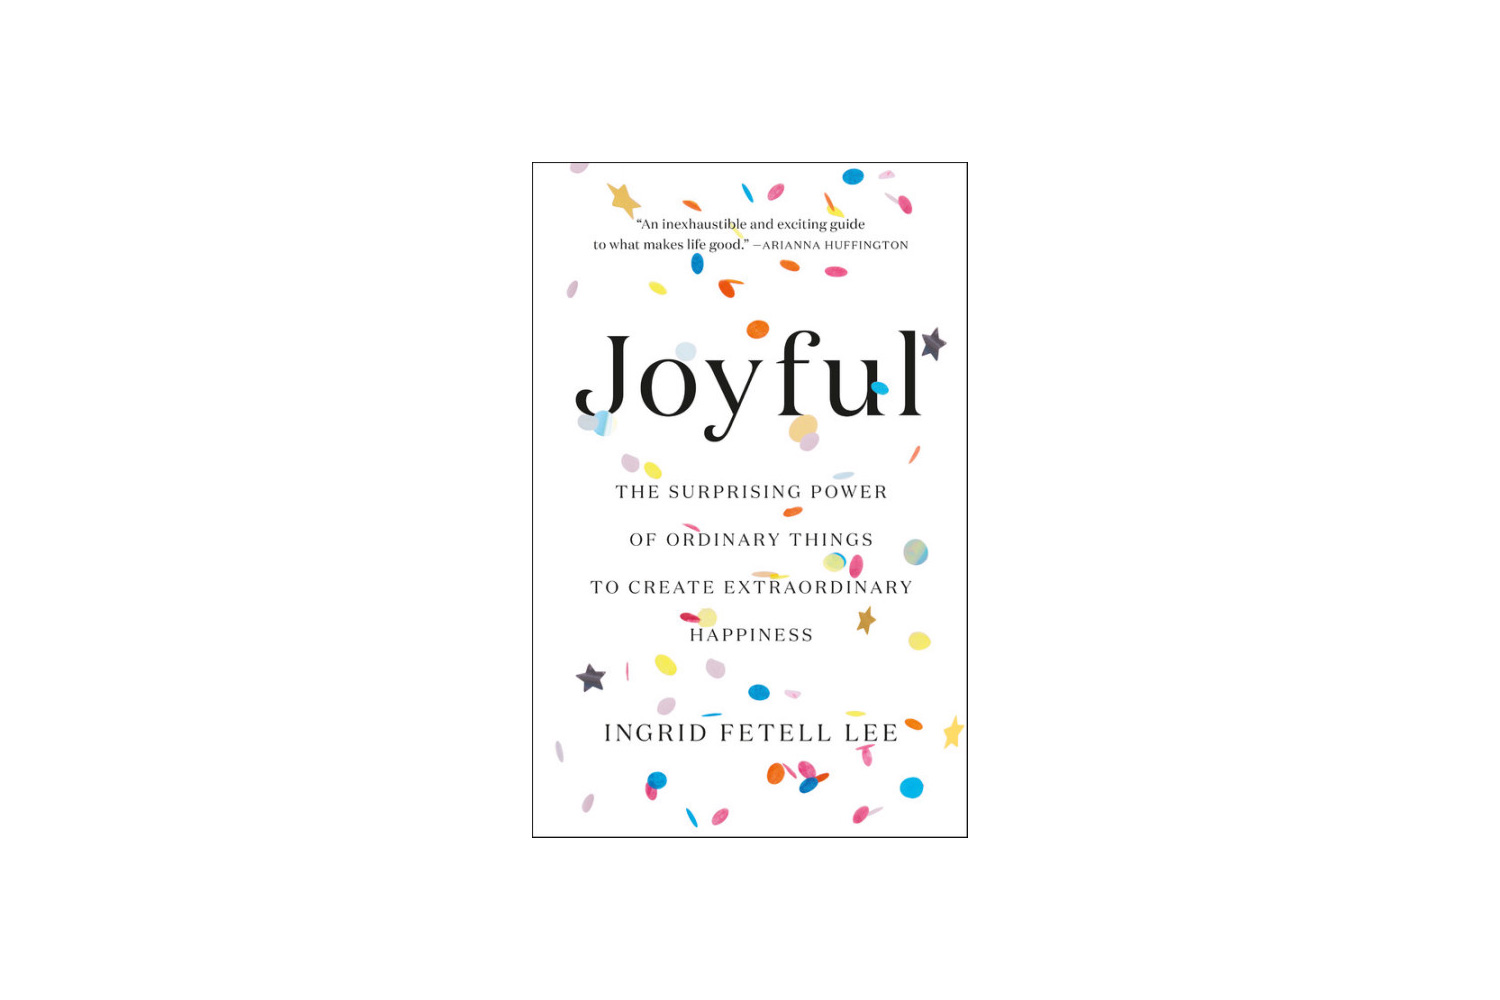 Best Books 2018 Joyful, by Ingrid Fetell Lee